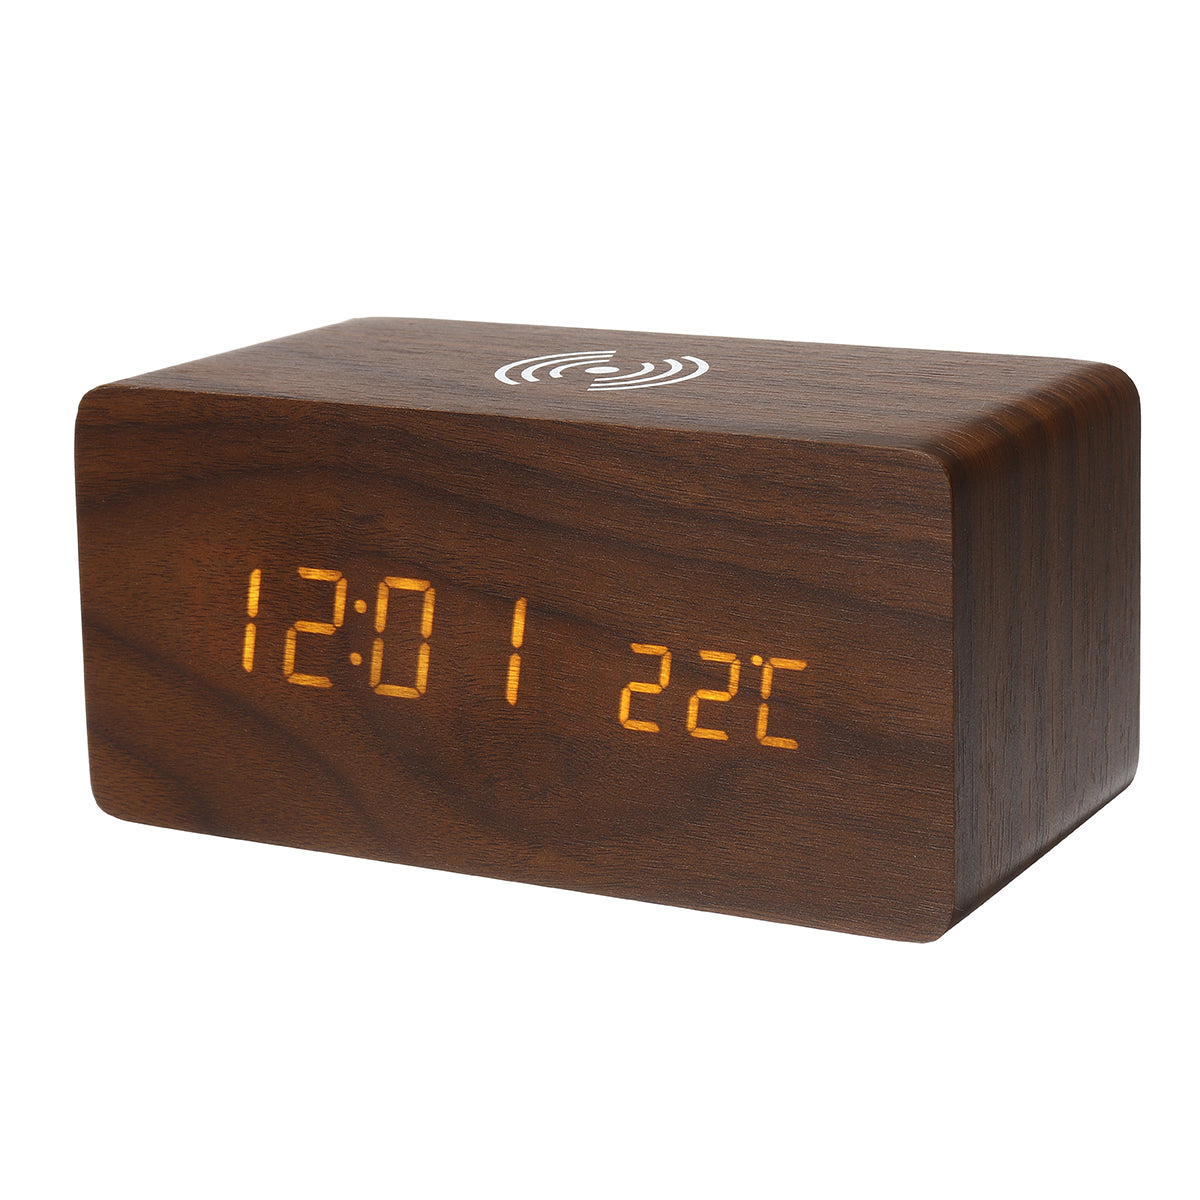 Bakeey 3 in 1 Qi Wireless Charger & LED Digital Alarm Clock & Thermometer Modern Wooden